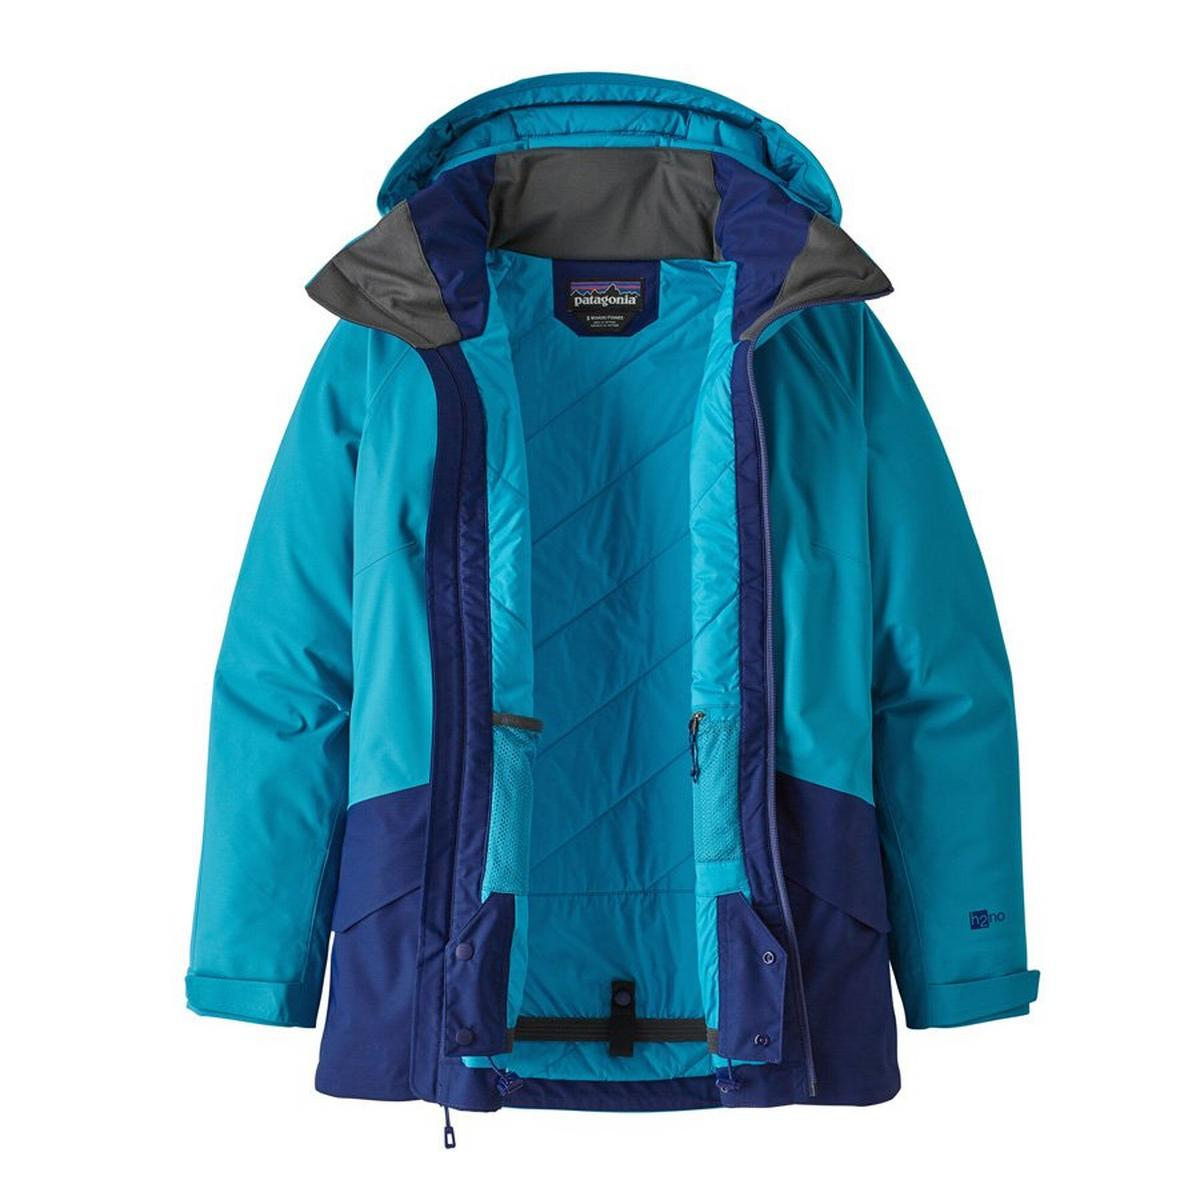 Patagonia Women's Insulated Snowbelle Jacket